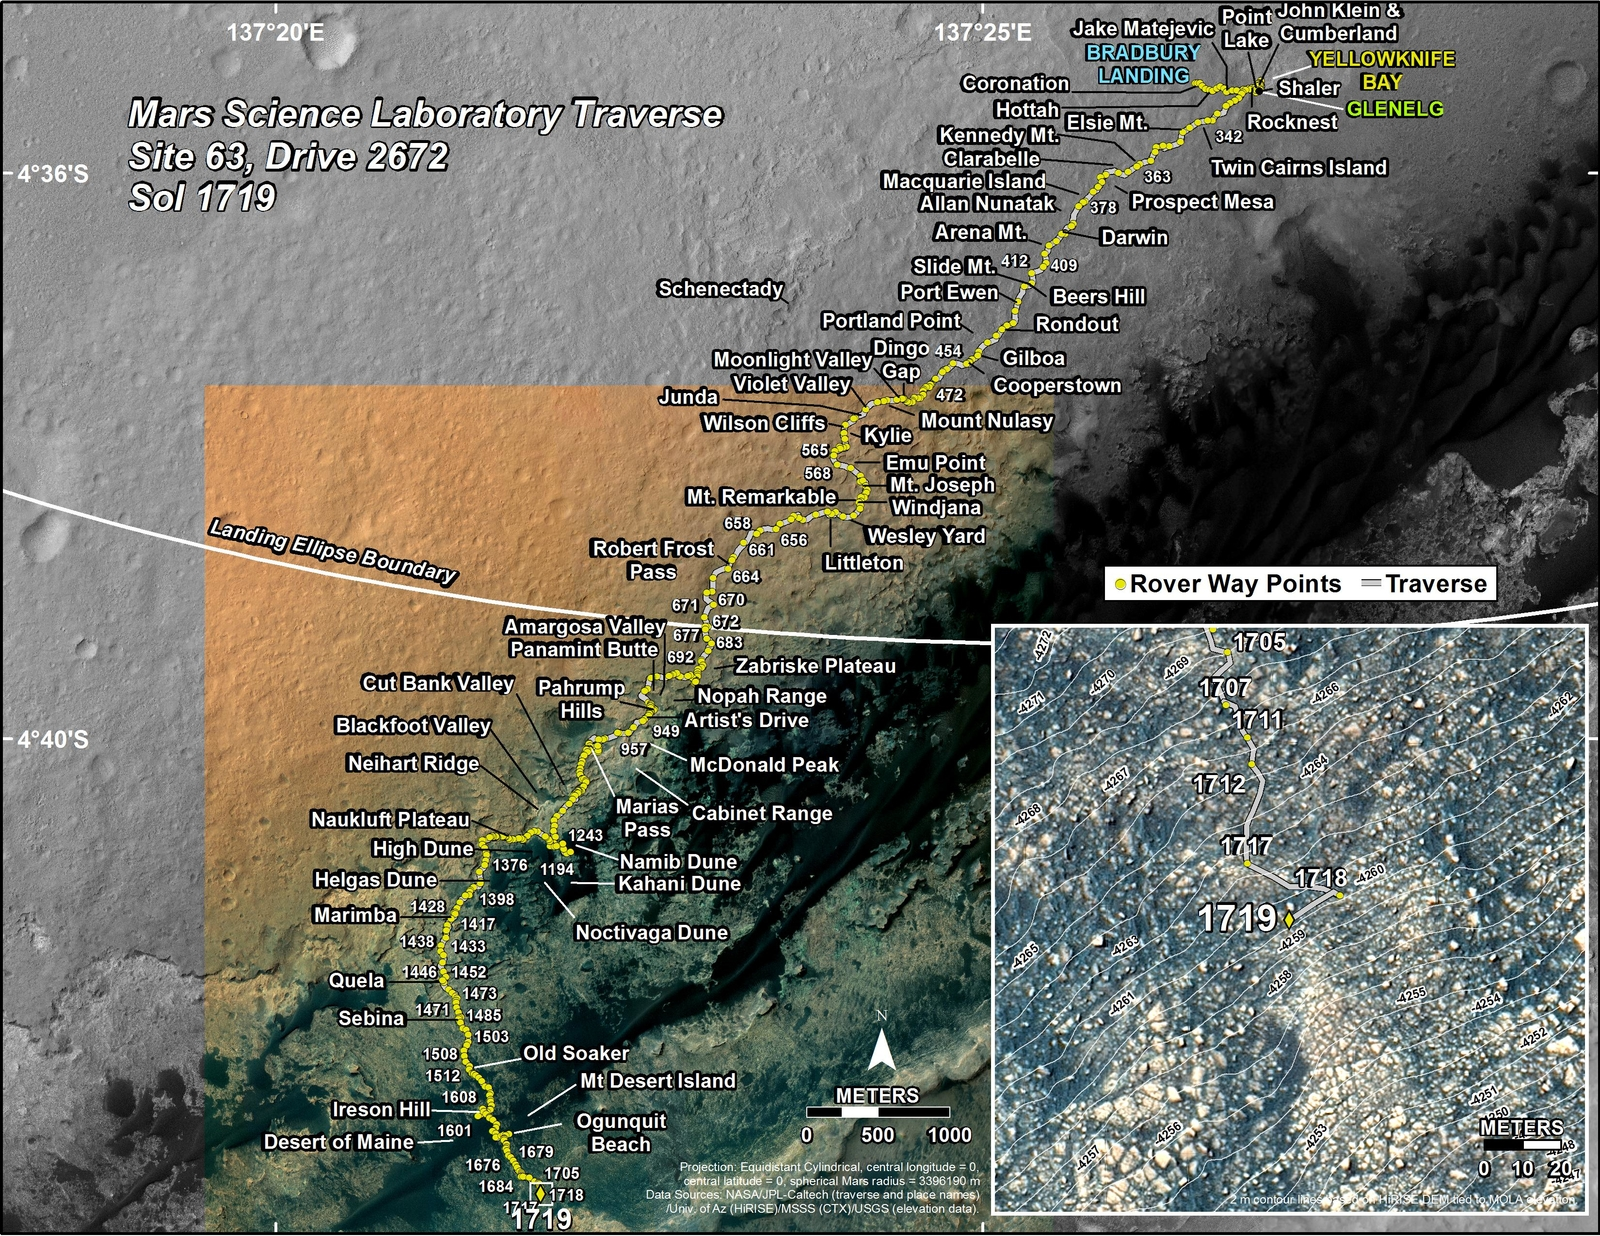 This map shows the route driven by NASA's Mars rover Curiosity through the 1719 Martian day, or sol, of the rover's mission on Mars (June 09, 2017).